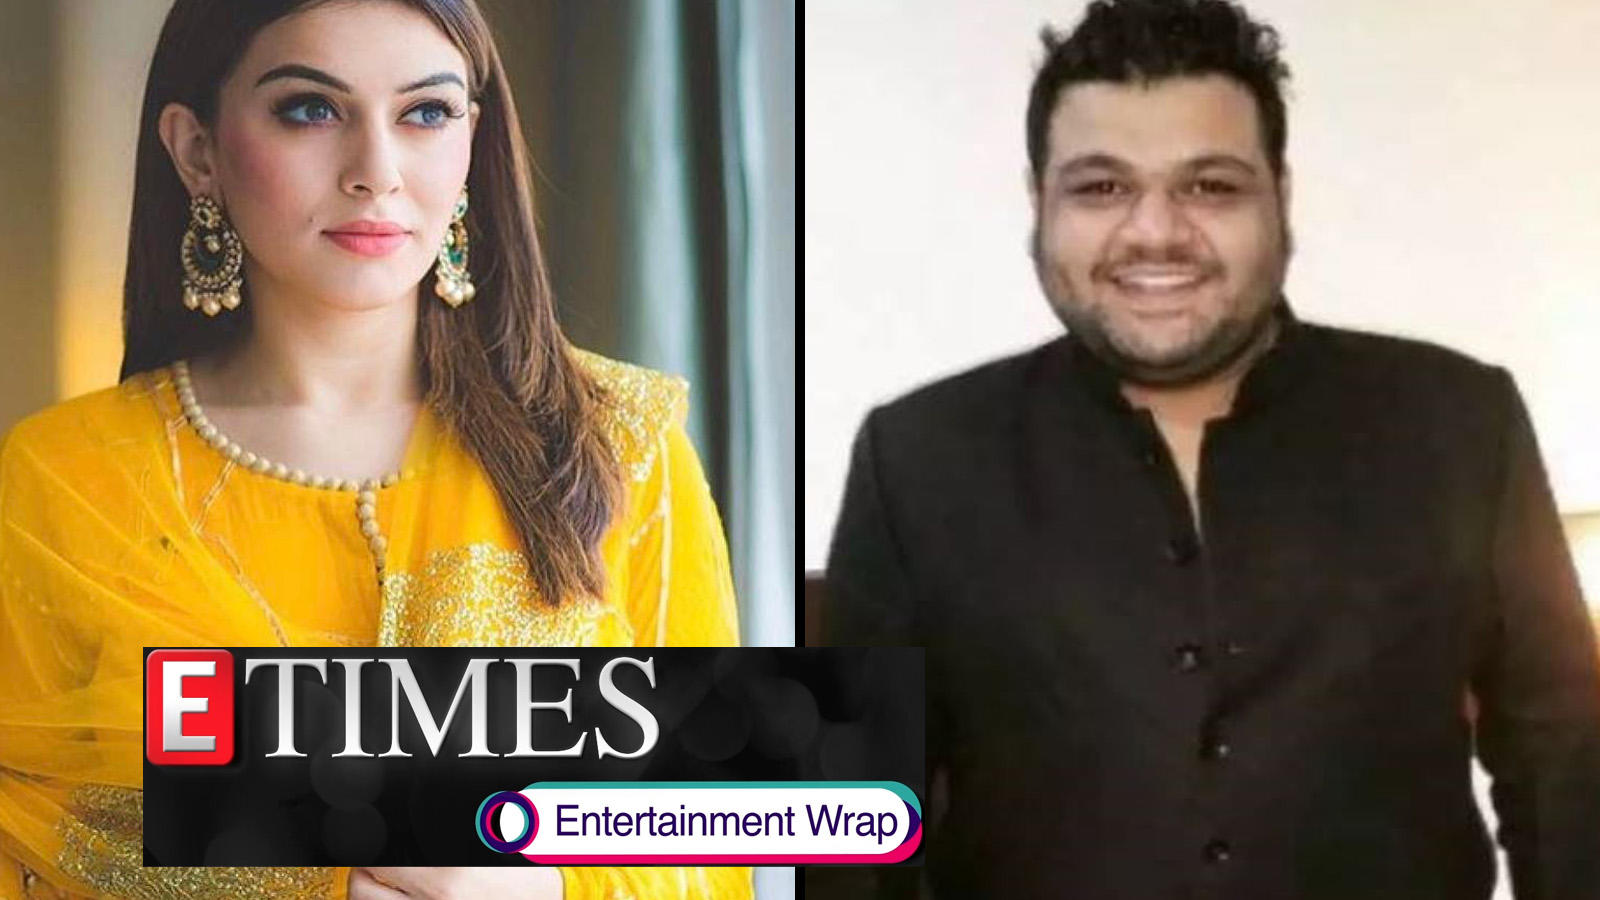 Amy Jackson Private Photos Leaked hansika motwani reacts to leaked private pictures; govinda's nephew  janwendra ahuja found dead in his mumbai flat, and more